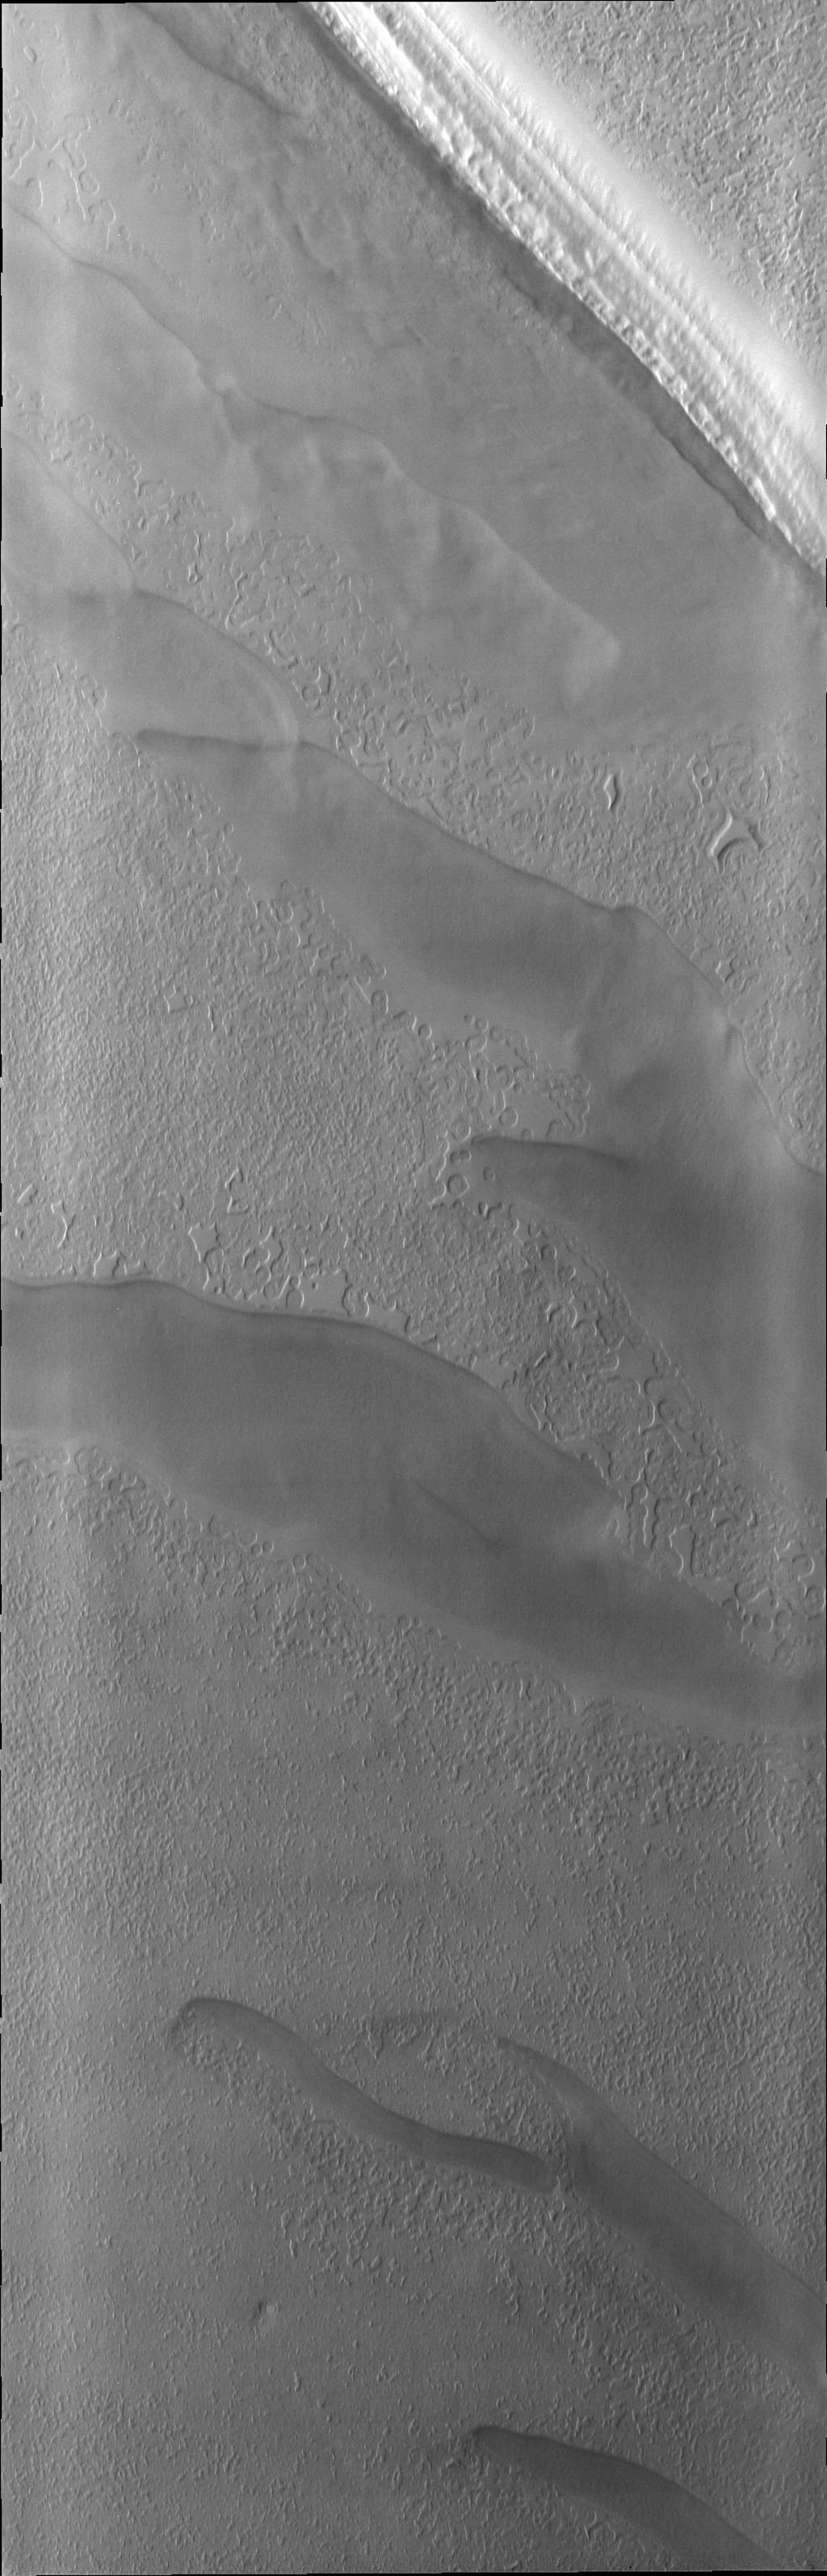 As spring progresses at the south pole, the surface reacts to the change of season. This image from NASA's 2001 Mars Odyssey spacecraft shows a region of the south pole that is monitored throughout spring, summer, and fall at the south pole.